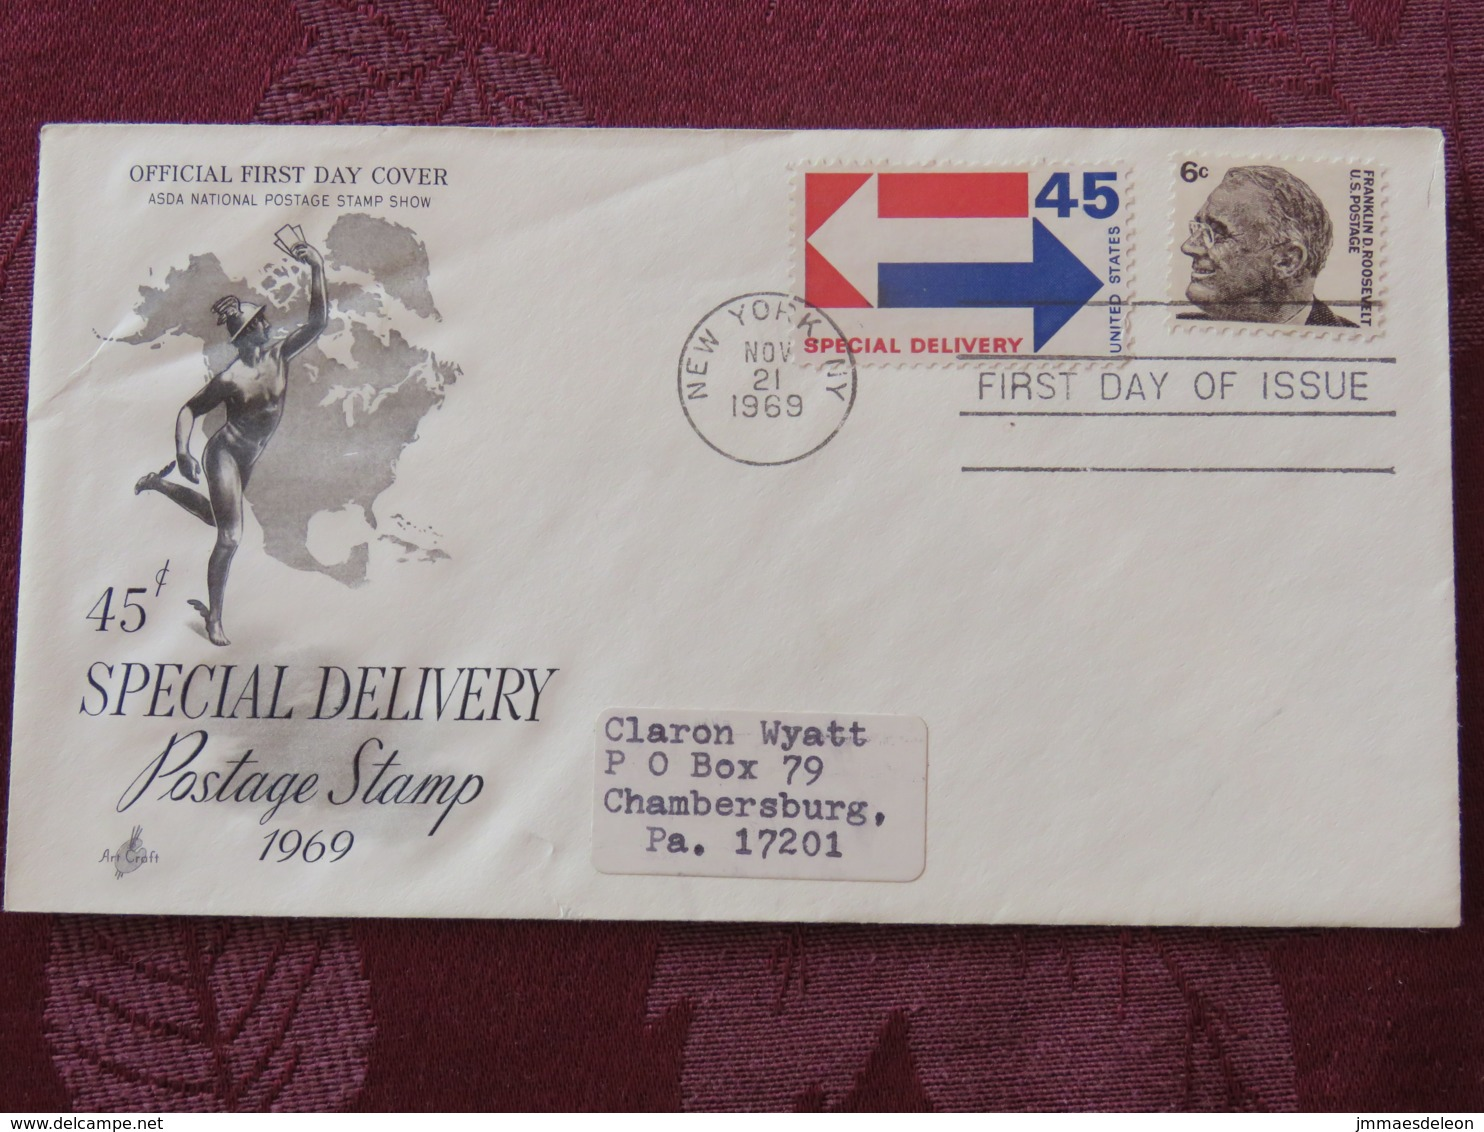 USA 1982 FDC Cover New York - Franklin Roosevelt - 45c Special Delivery Stamp - Mercury - Map - United States